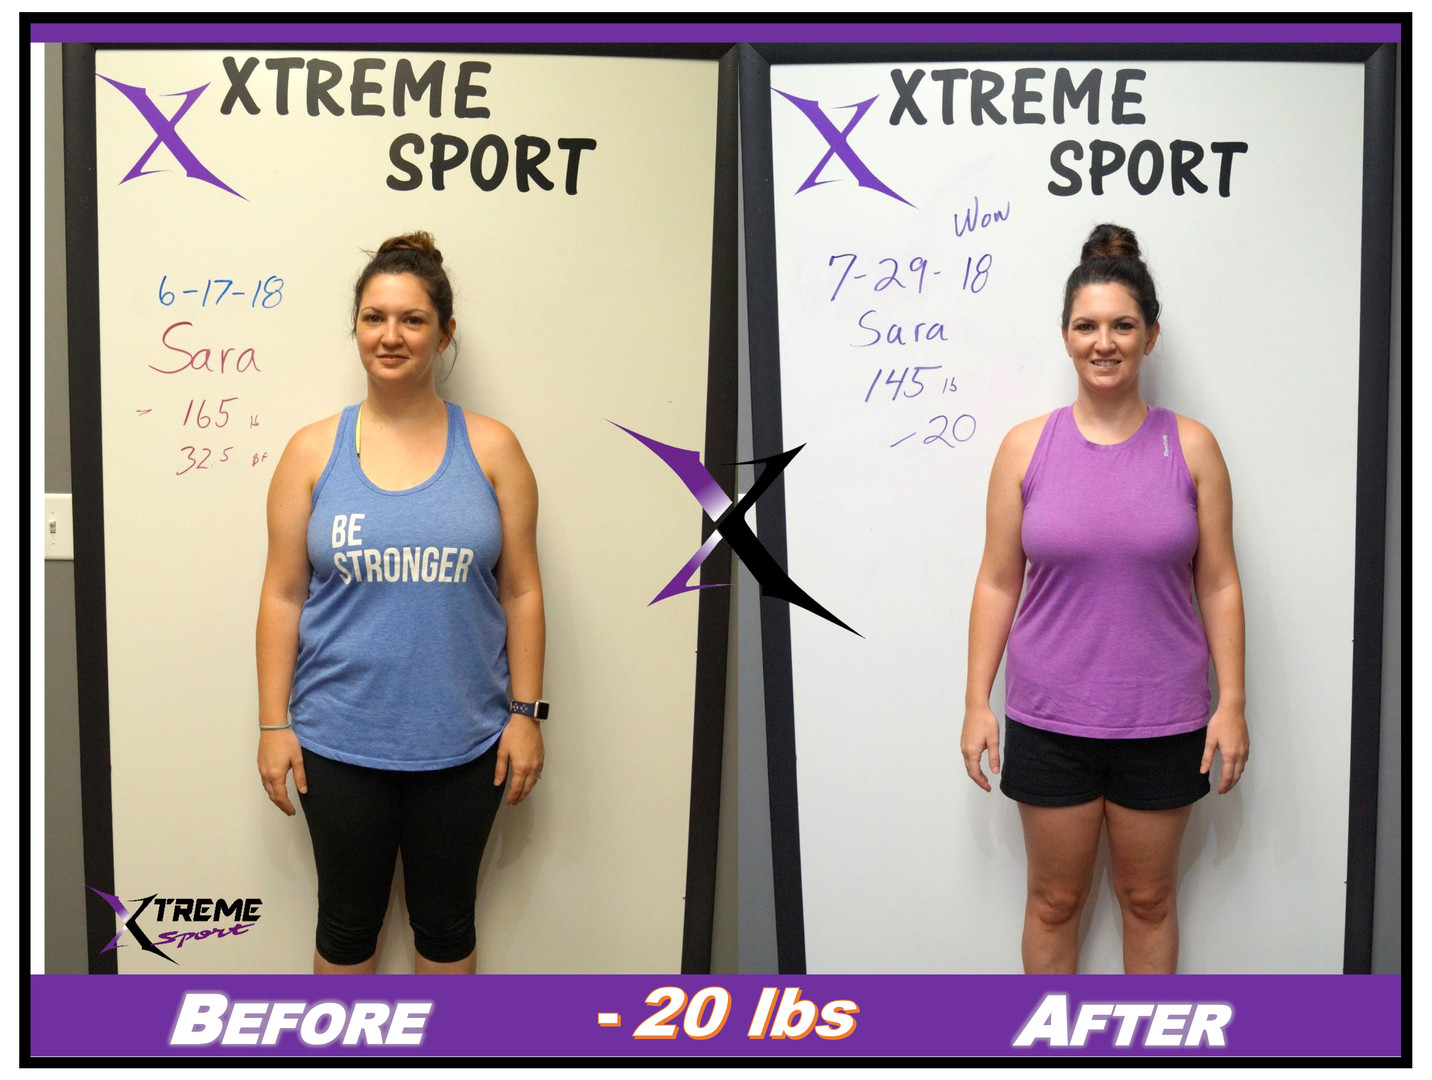 Results vary depending on starting point and effort following Xtreme Sport Fitness Exercise and Nutrition Plan.